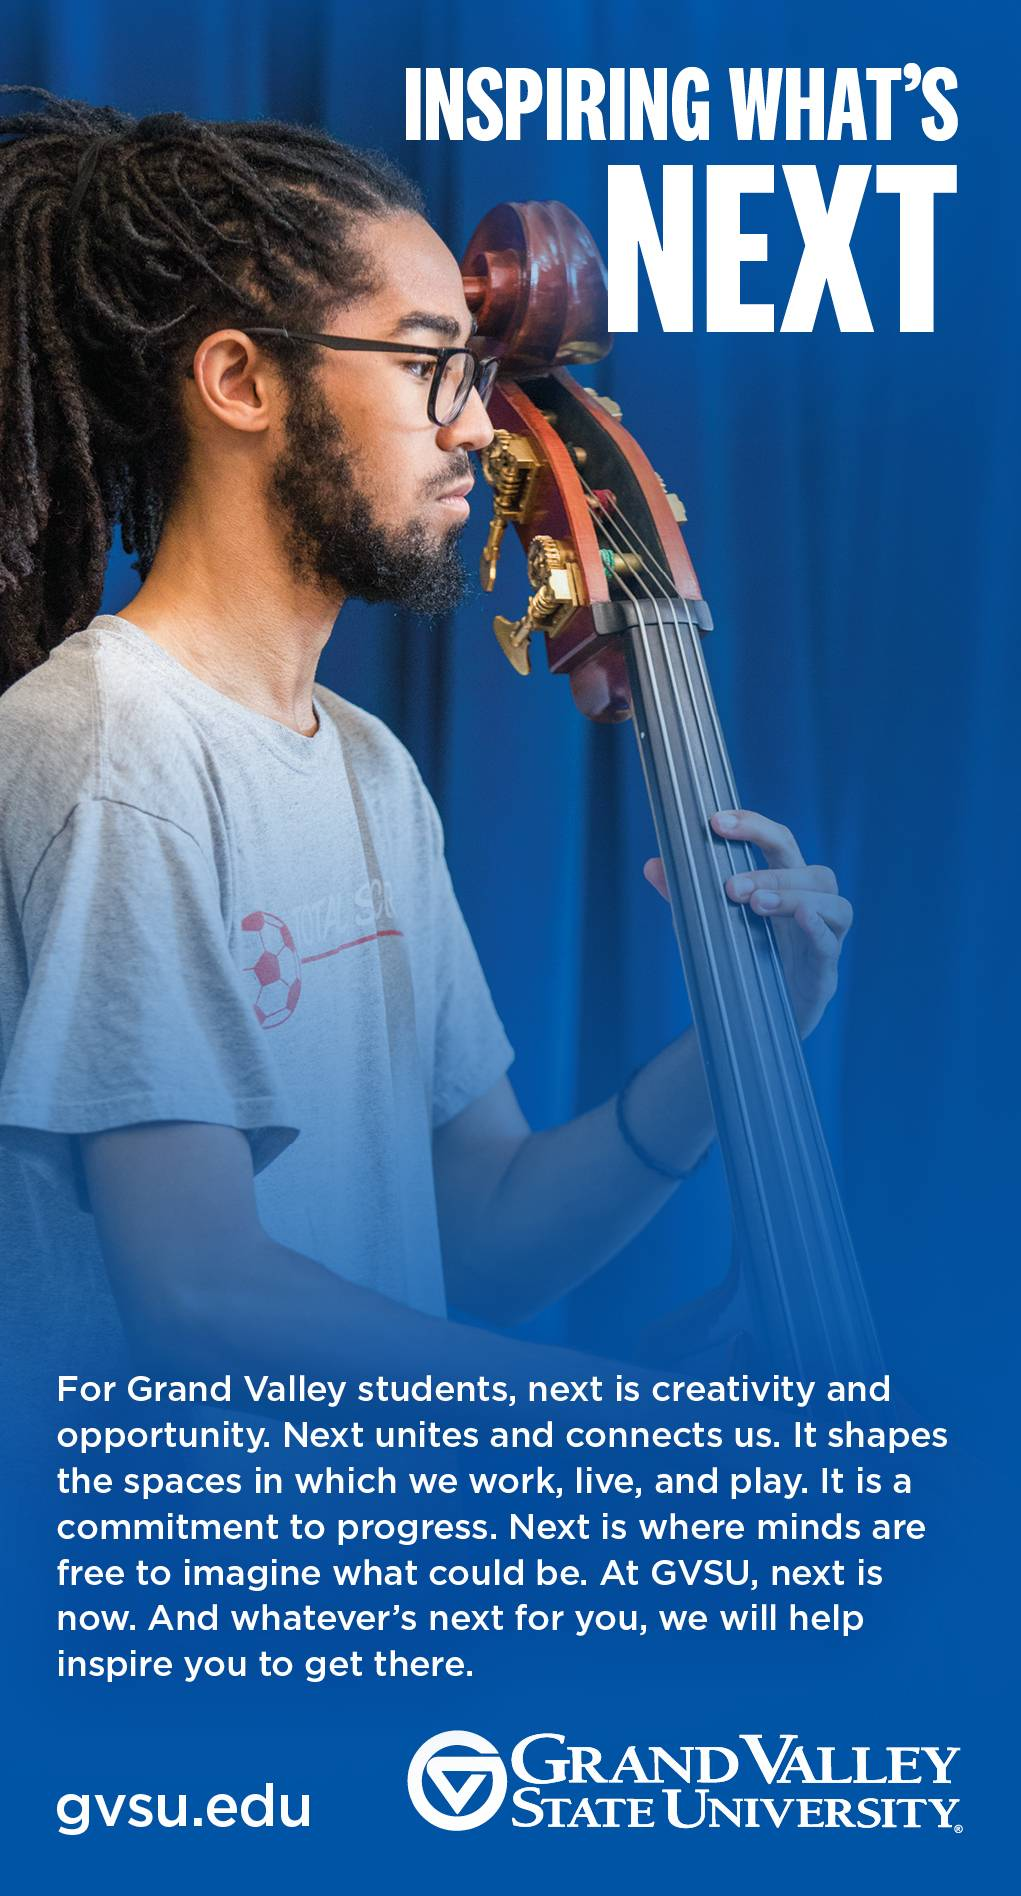 Advertisement example featuring student playing upright bass